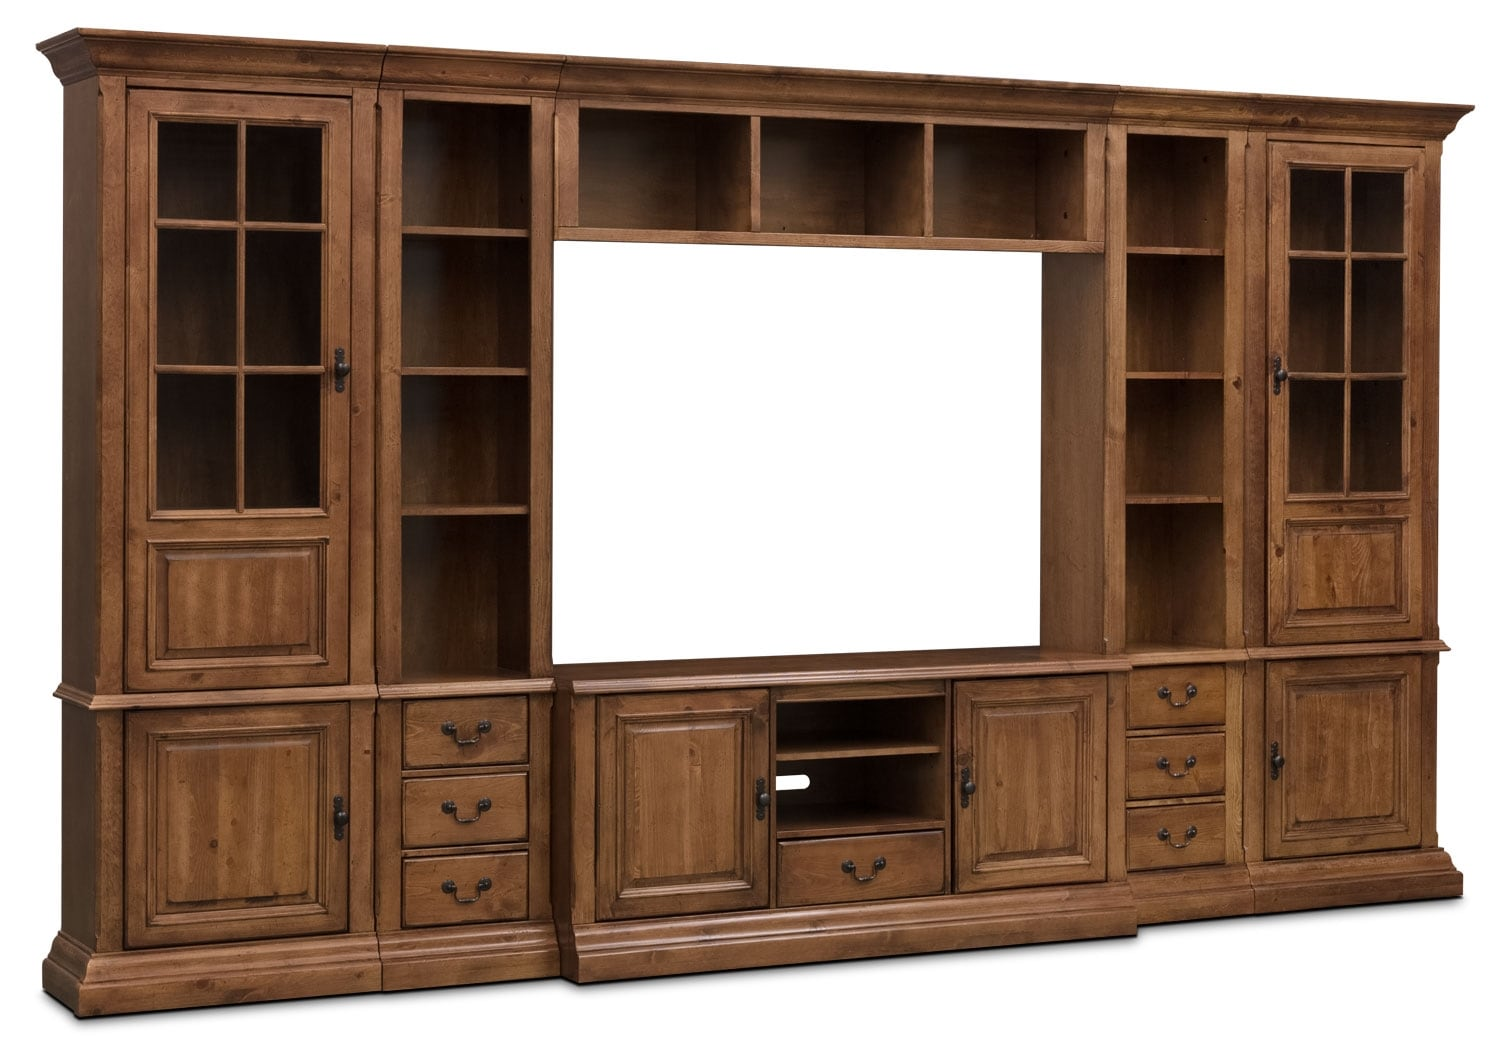 "Edgewood 6-Piece Entertainment Centre with 60"" TV Opening"